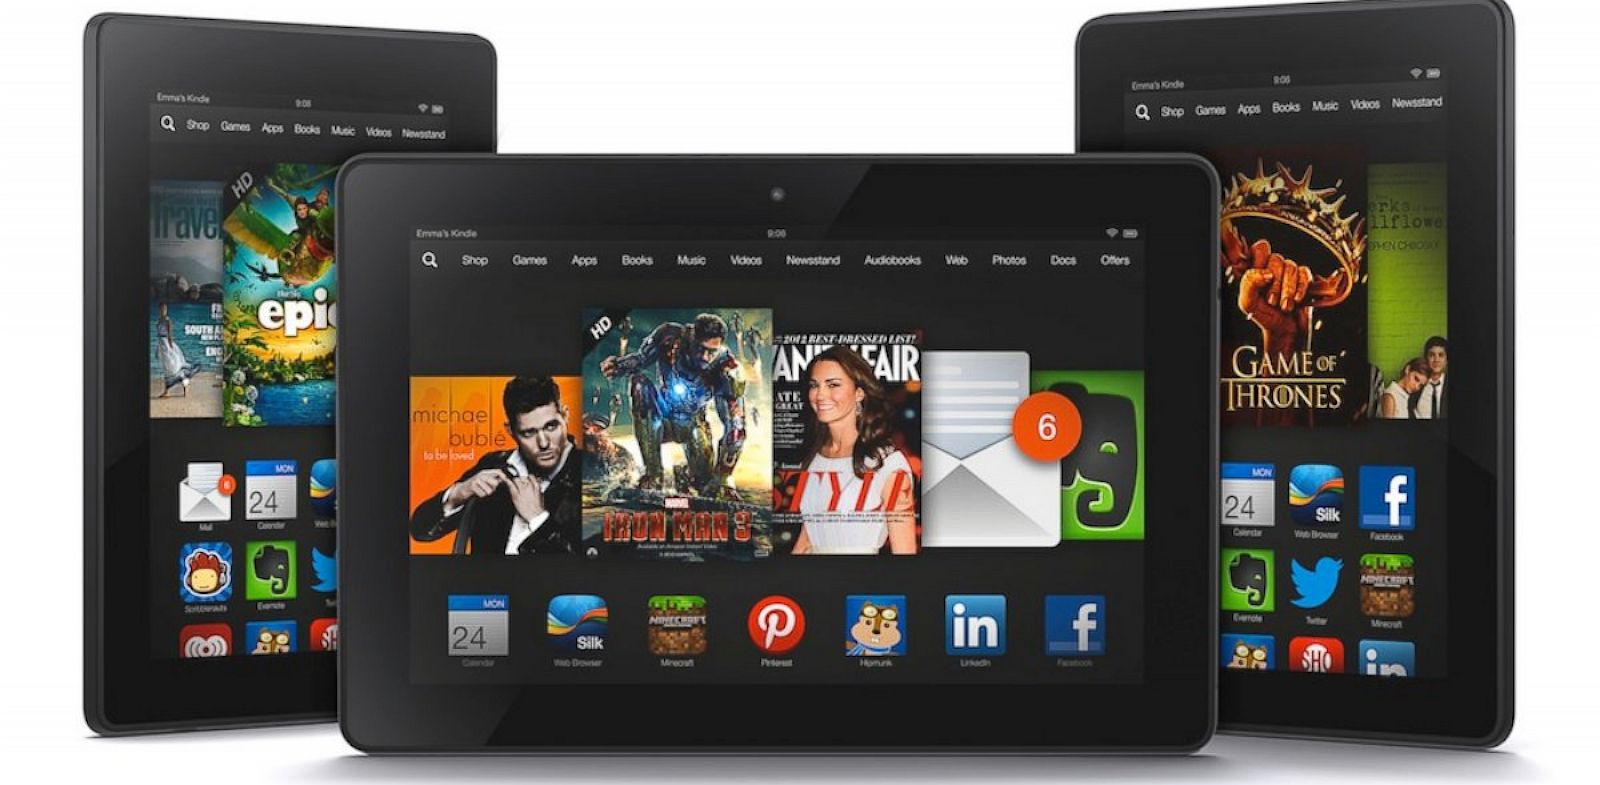 PHOTO: The Kindle Fire HD